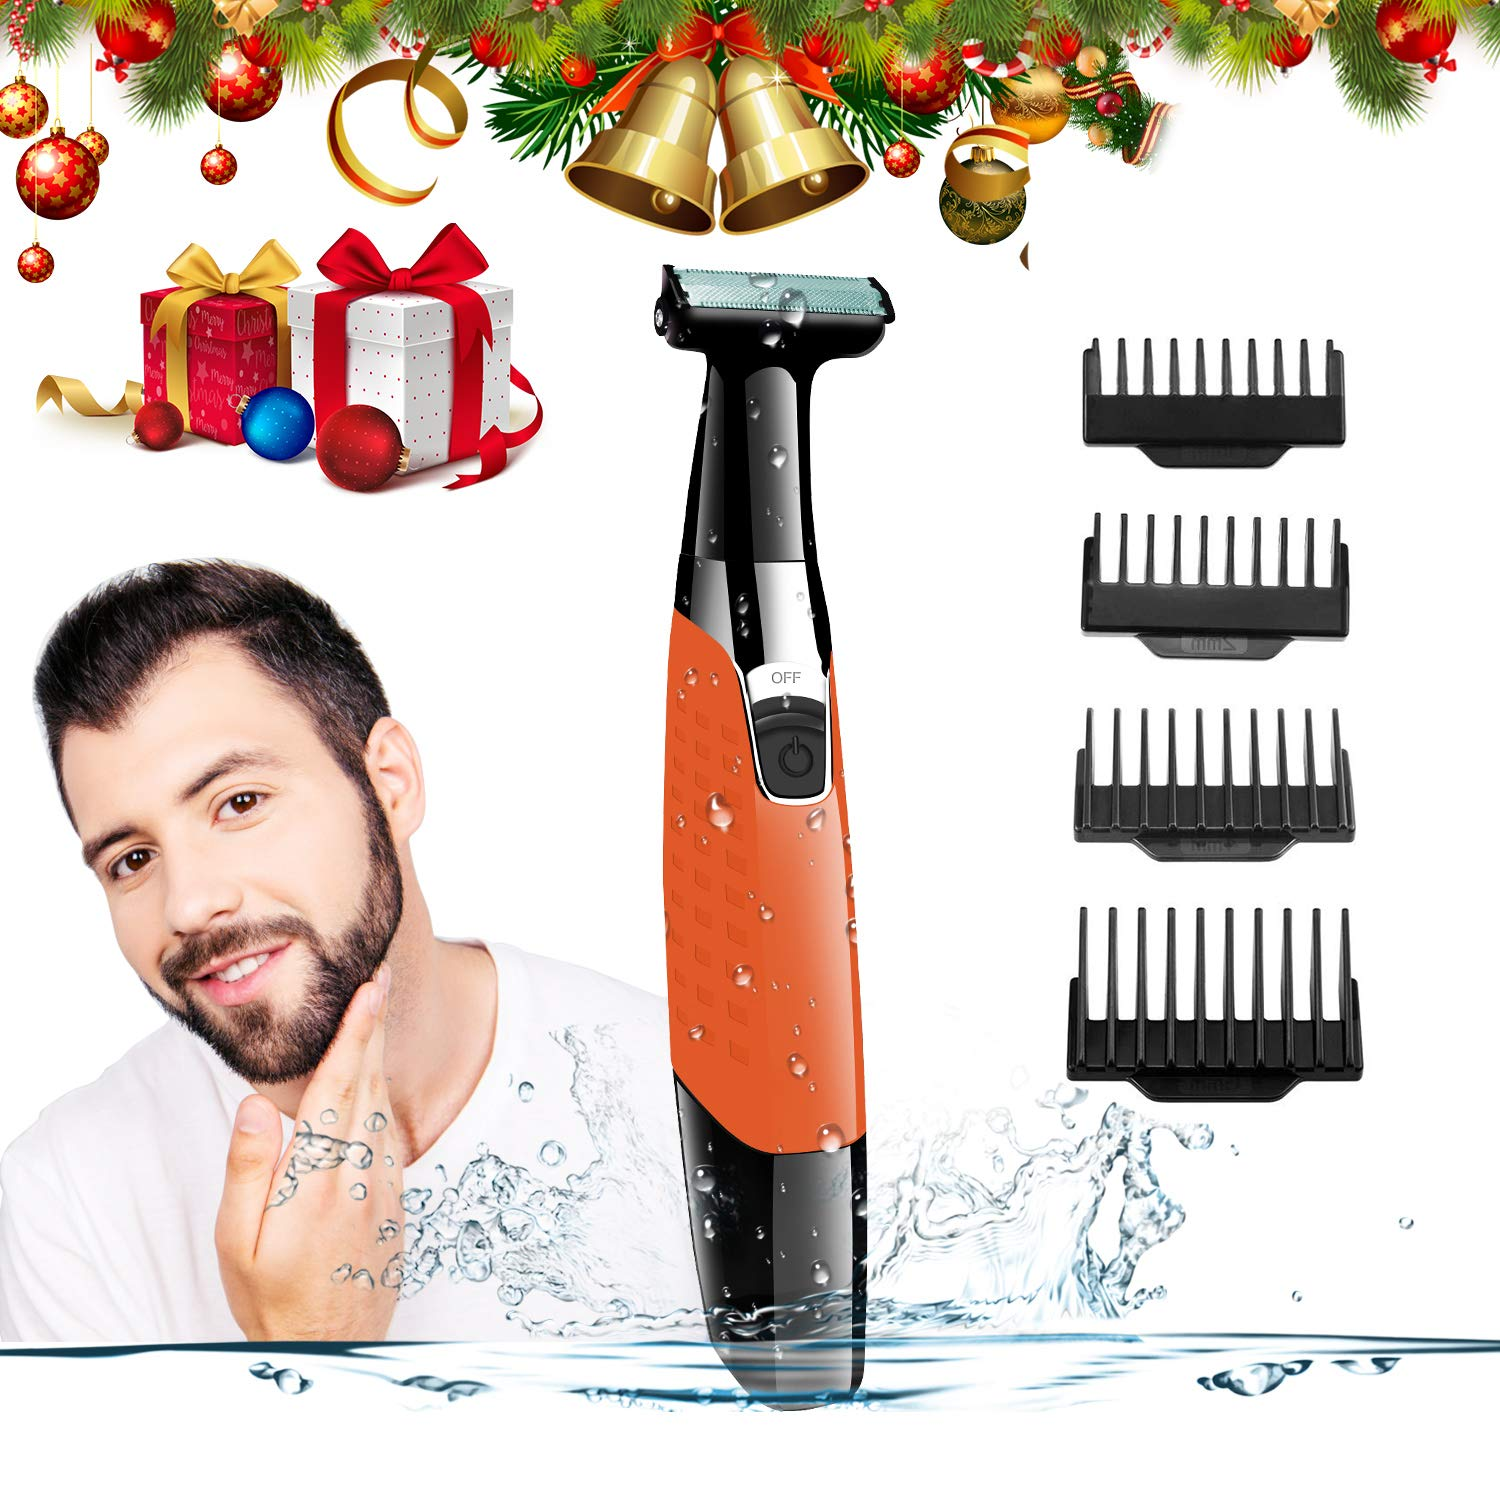 Electric Shaver Wet and Dry Men's Shaving Razor USB Rechargeable and Cordless Body Hair Remover for Women Hybrid Precision Trimmer and Edger with 4 Guide Combs & Cleansing Brush A-TION